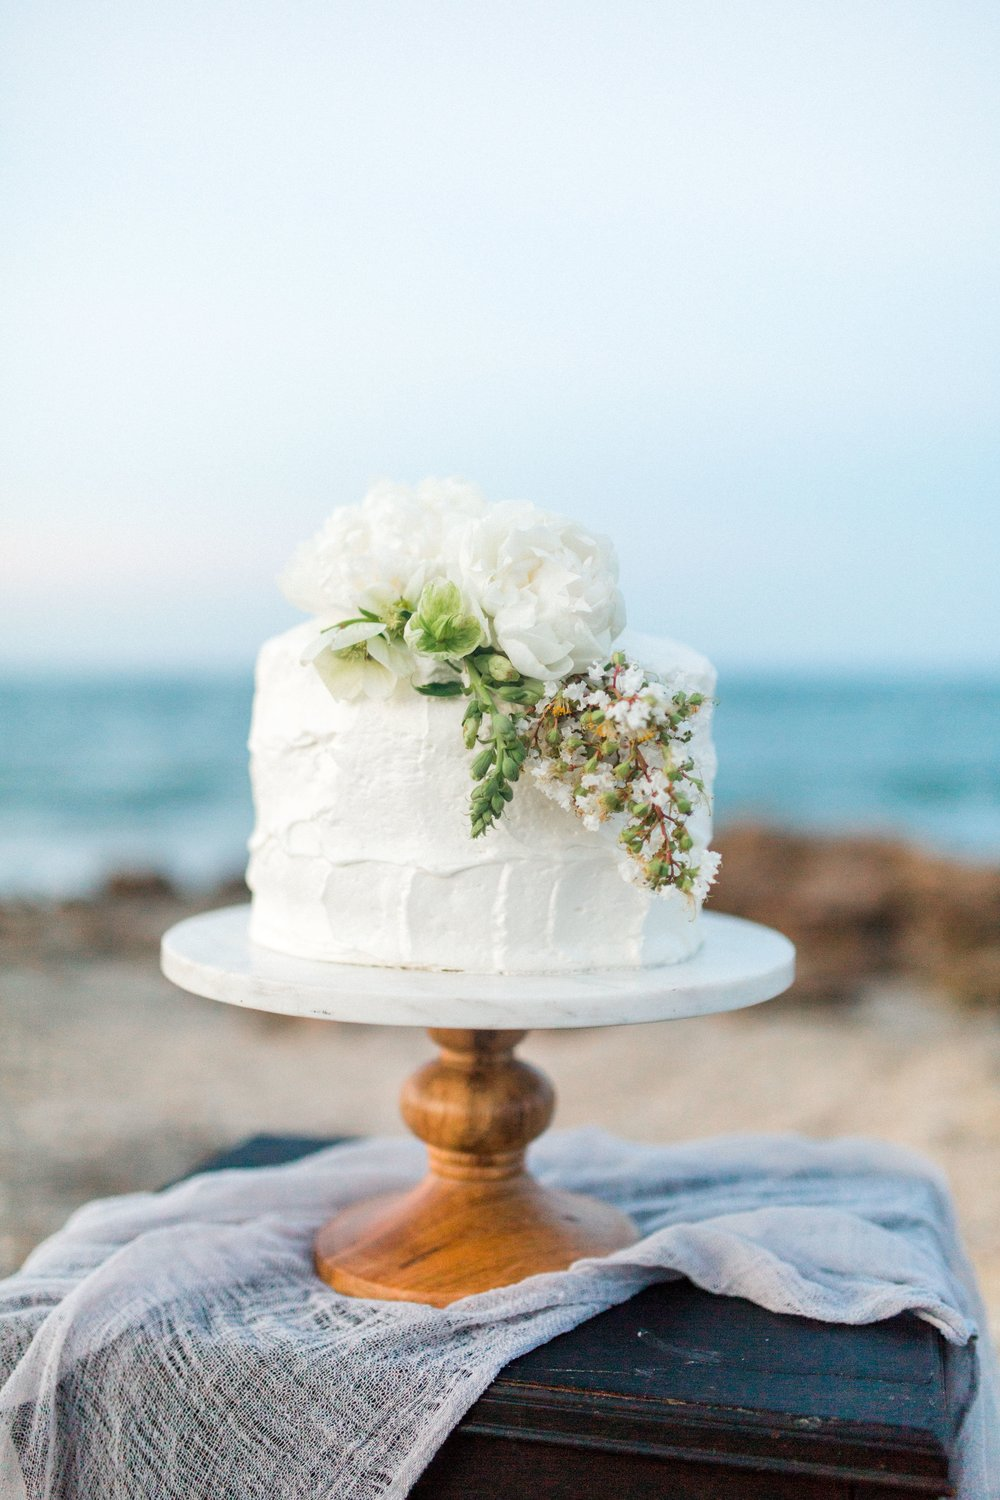 coral cove, jupiter beach FL, palm beach wedding photos, wedding cake from publix bakery